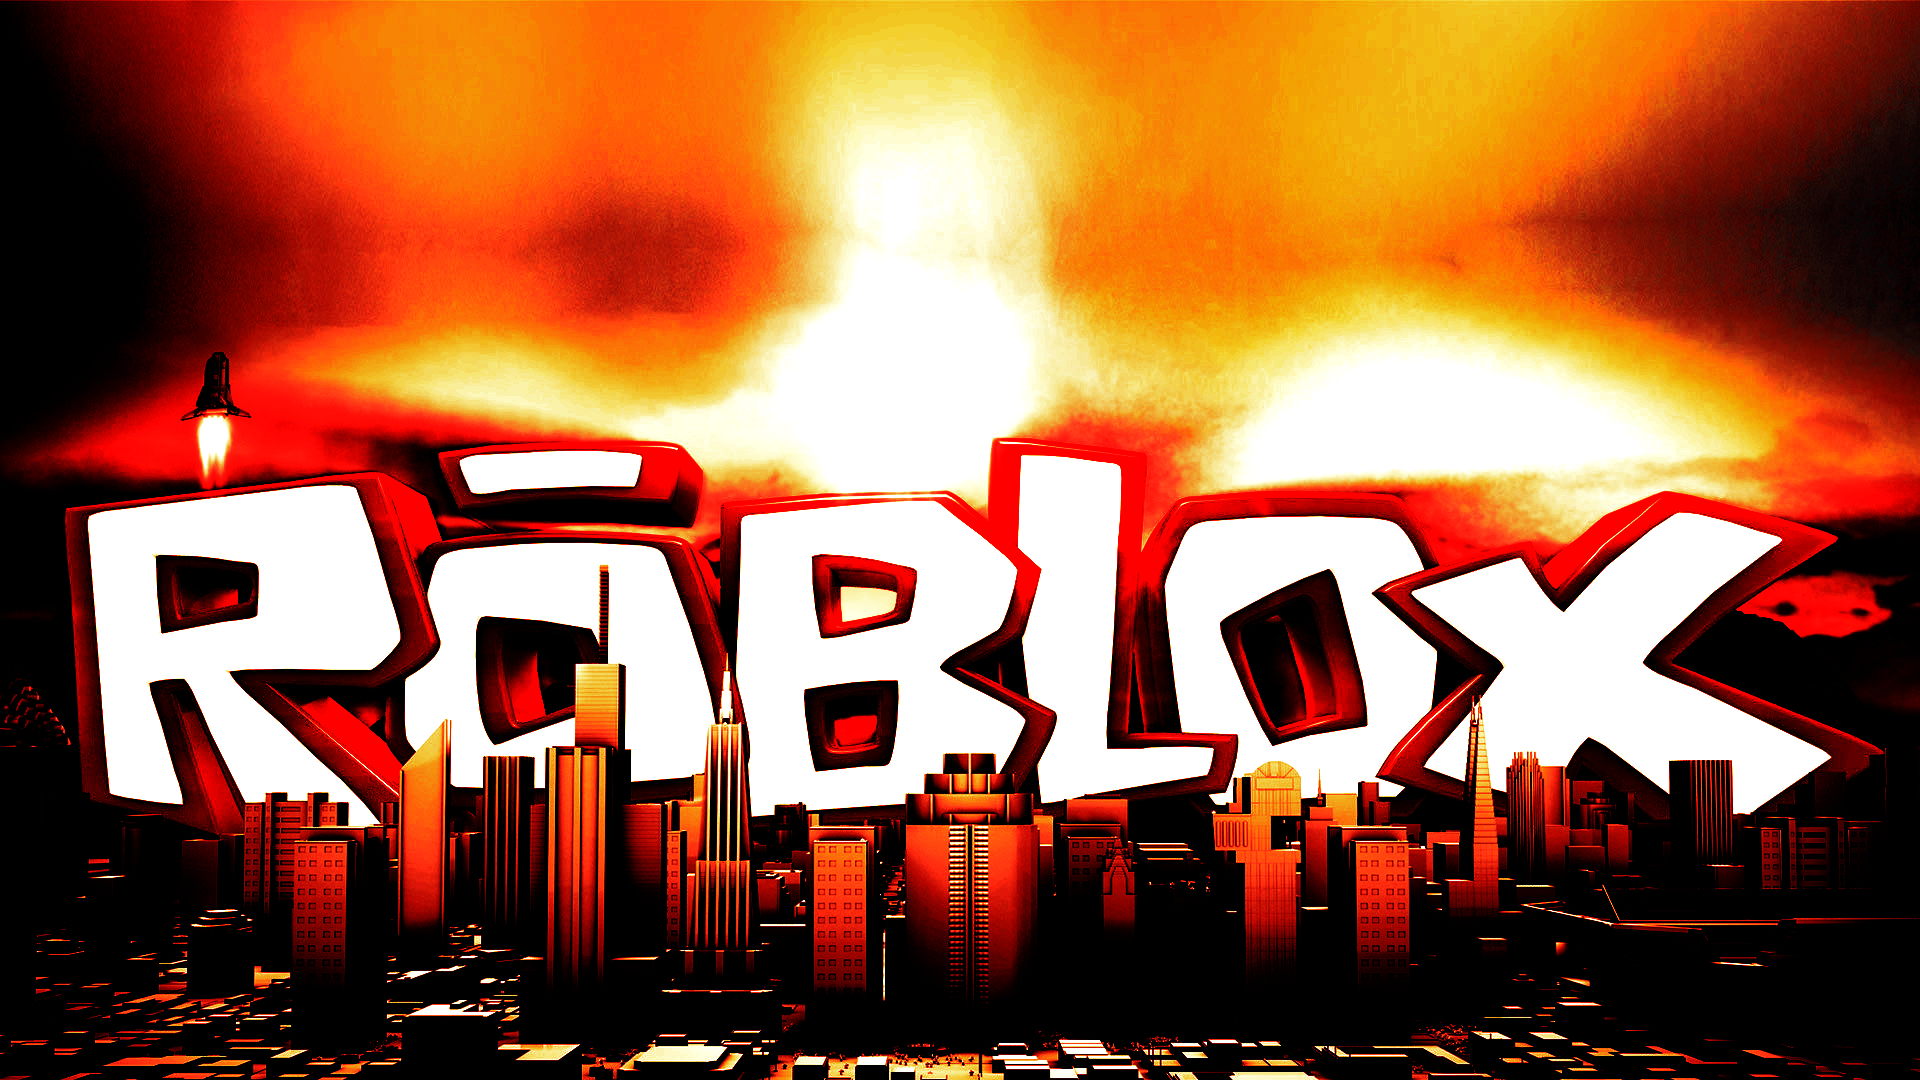 Roblox HD Wallpapers 23 images DodoWallpaper.